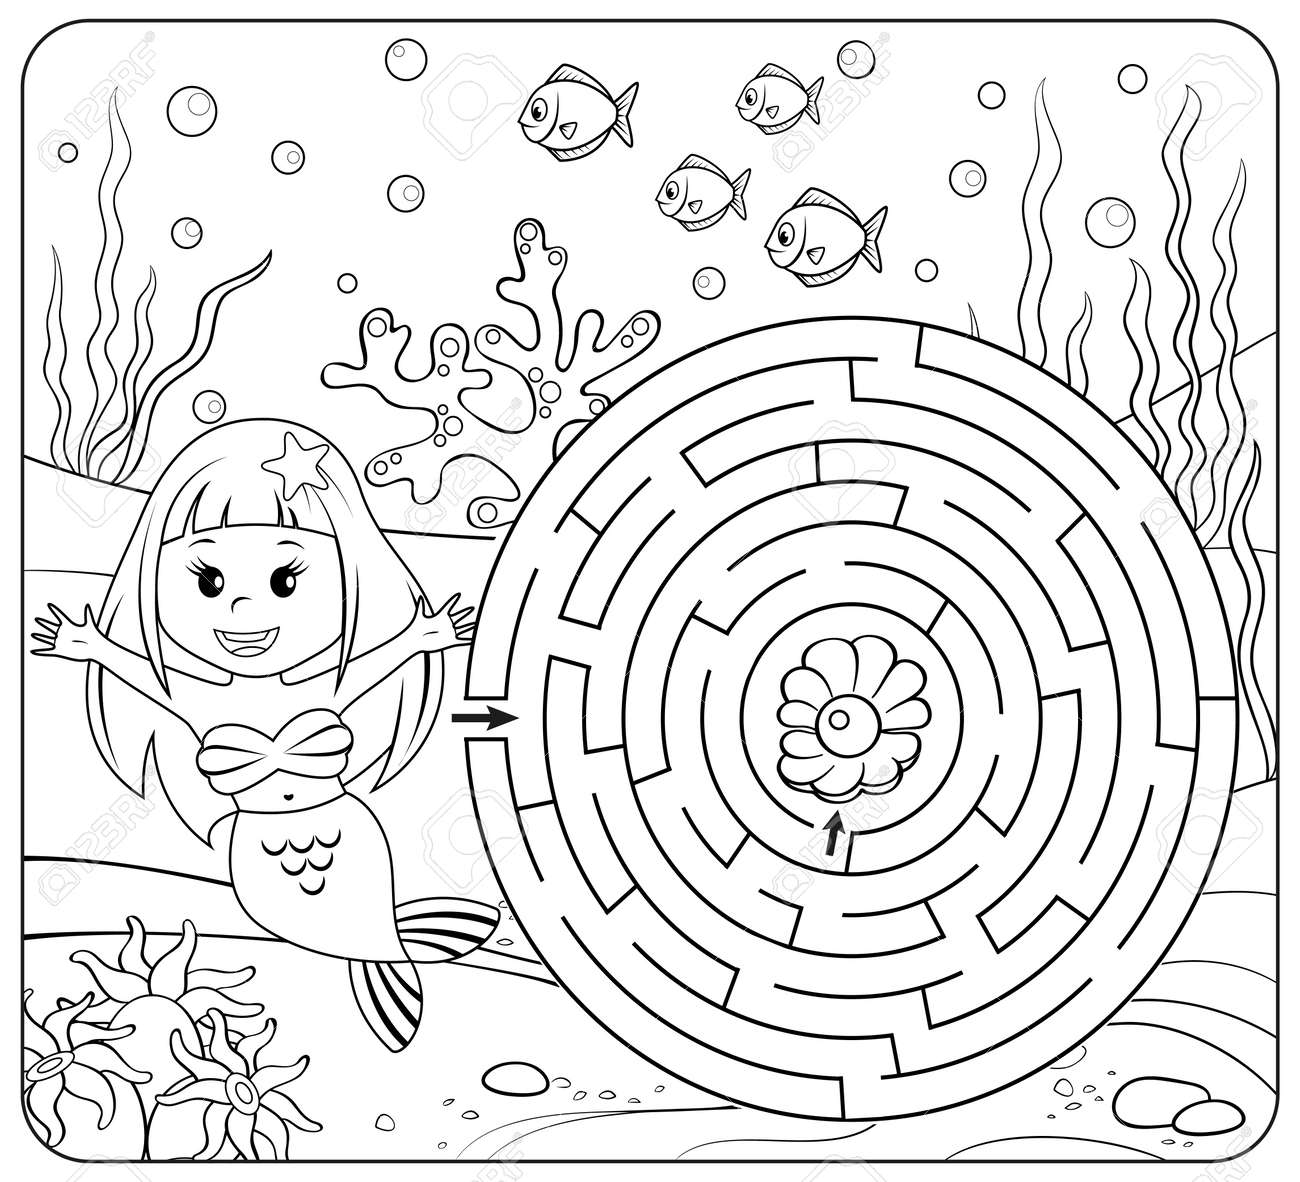 Uncategorized Labyrinth Coloring Pages help mermaid find path to pearl labyrinth maze game for kids coloring page